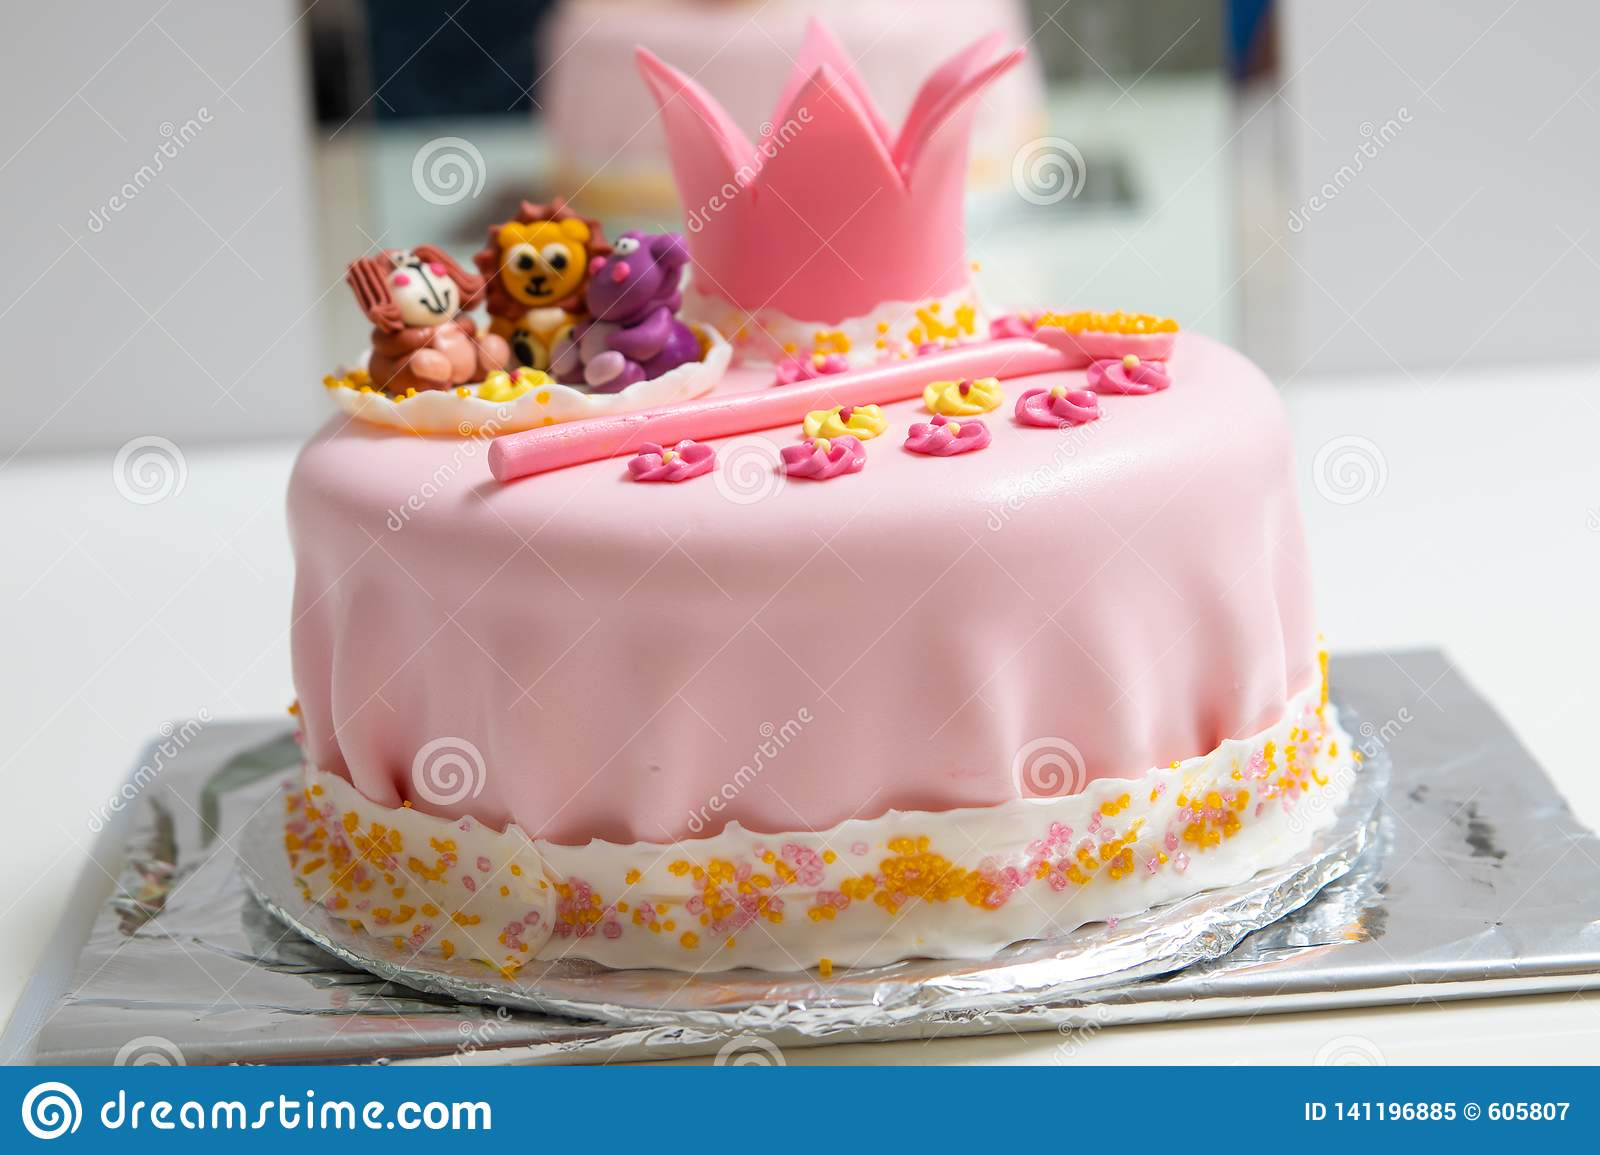 Pink Cake Of A Little Princess With Crown And Animal Figures Birthday One Year Old Holiday Concept